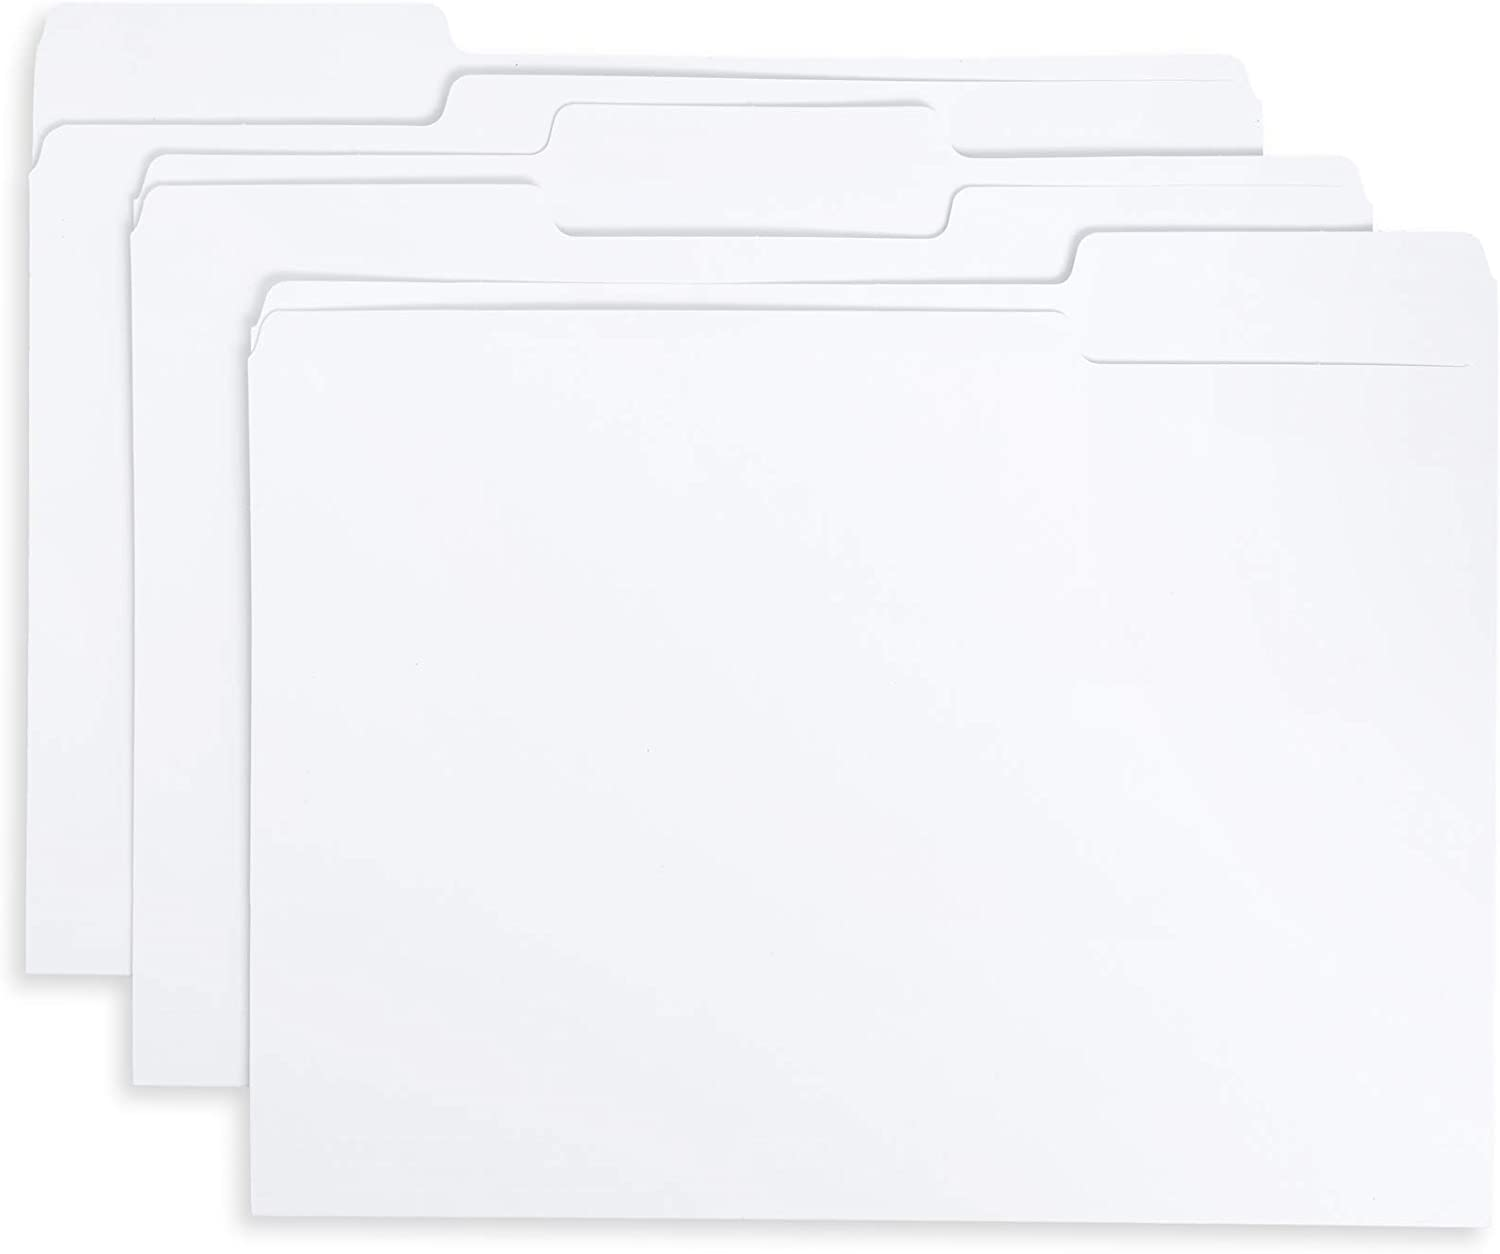 Blue Summit Supplies 100 White File Folders, 1/3 Cut Tab with Assorted Positions, Letter Size, Great for Organizing and Easy File Storage, 100 Pack